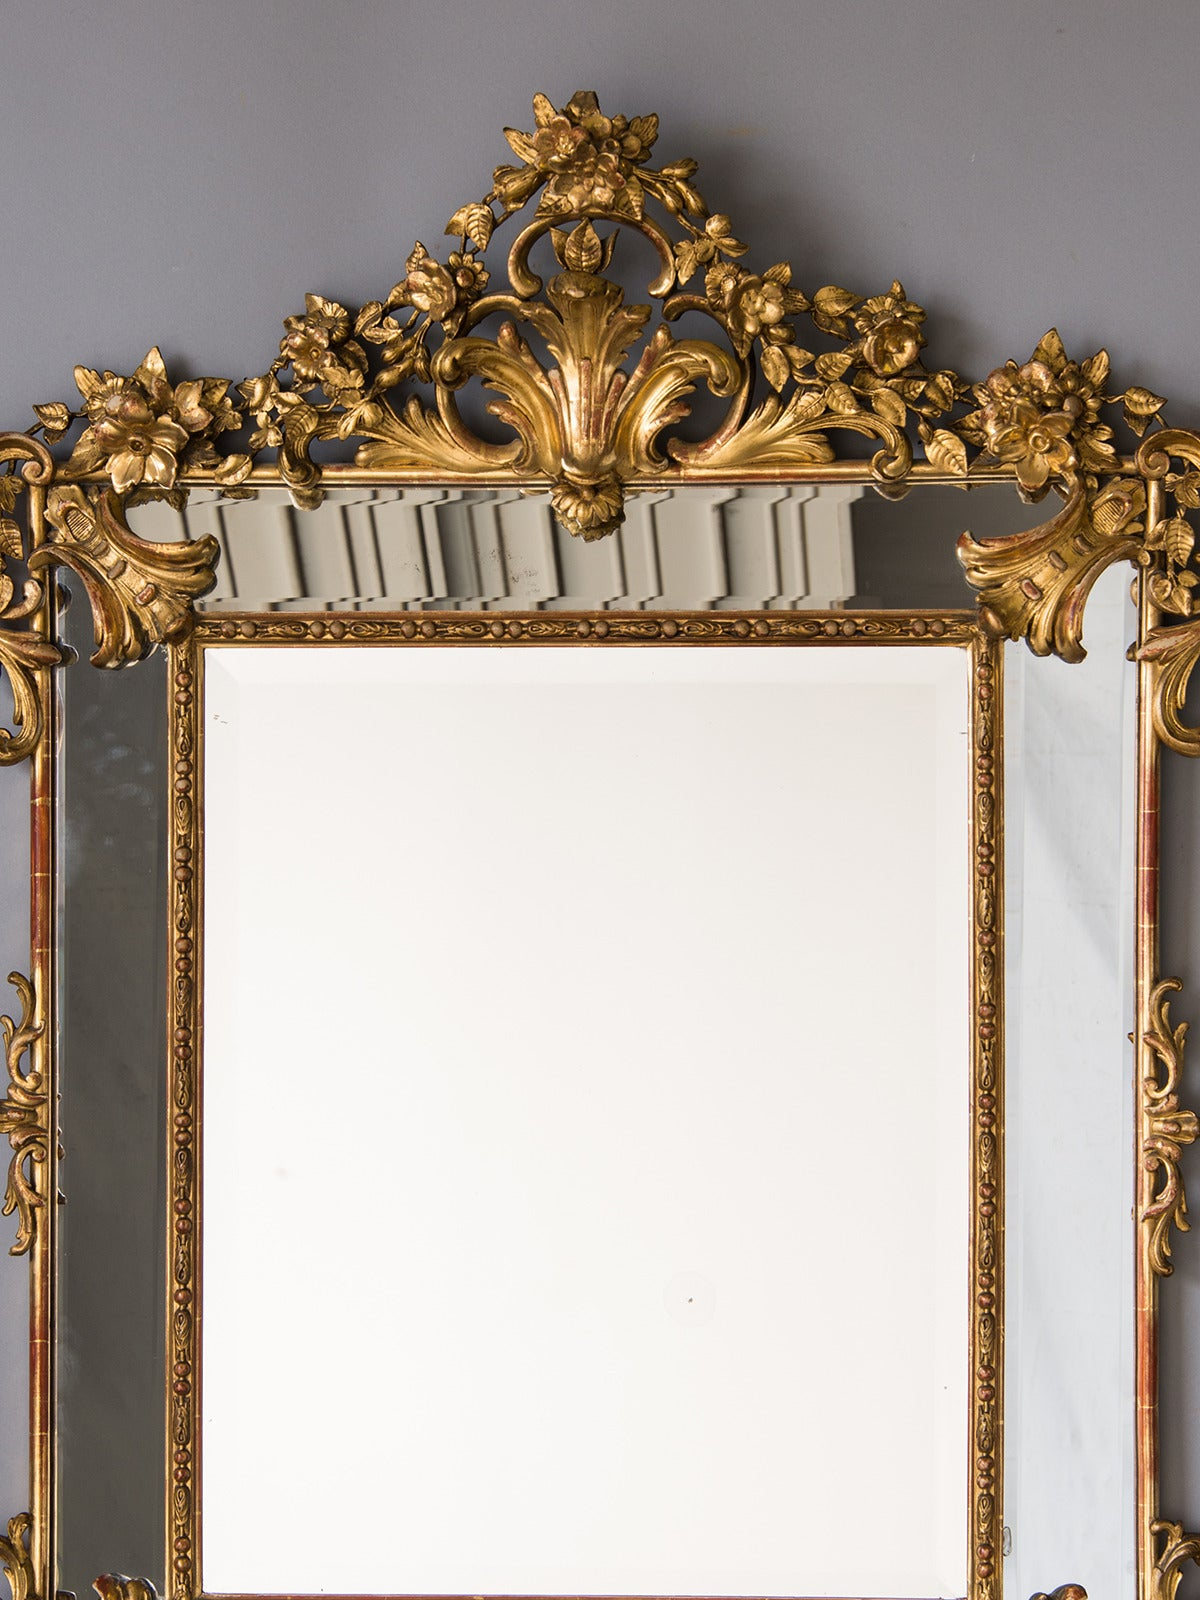 Bold Antique French Régence Style Pareclose Gold Leaf Mirror, circa 1890 4